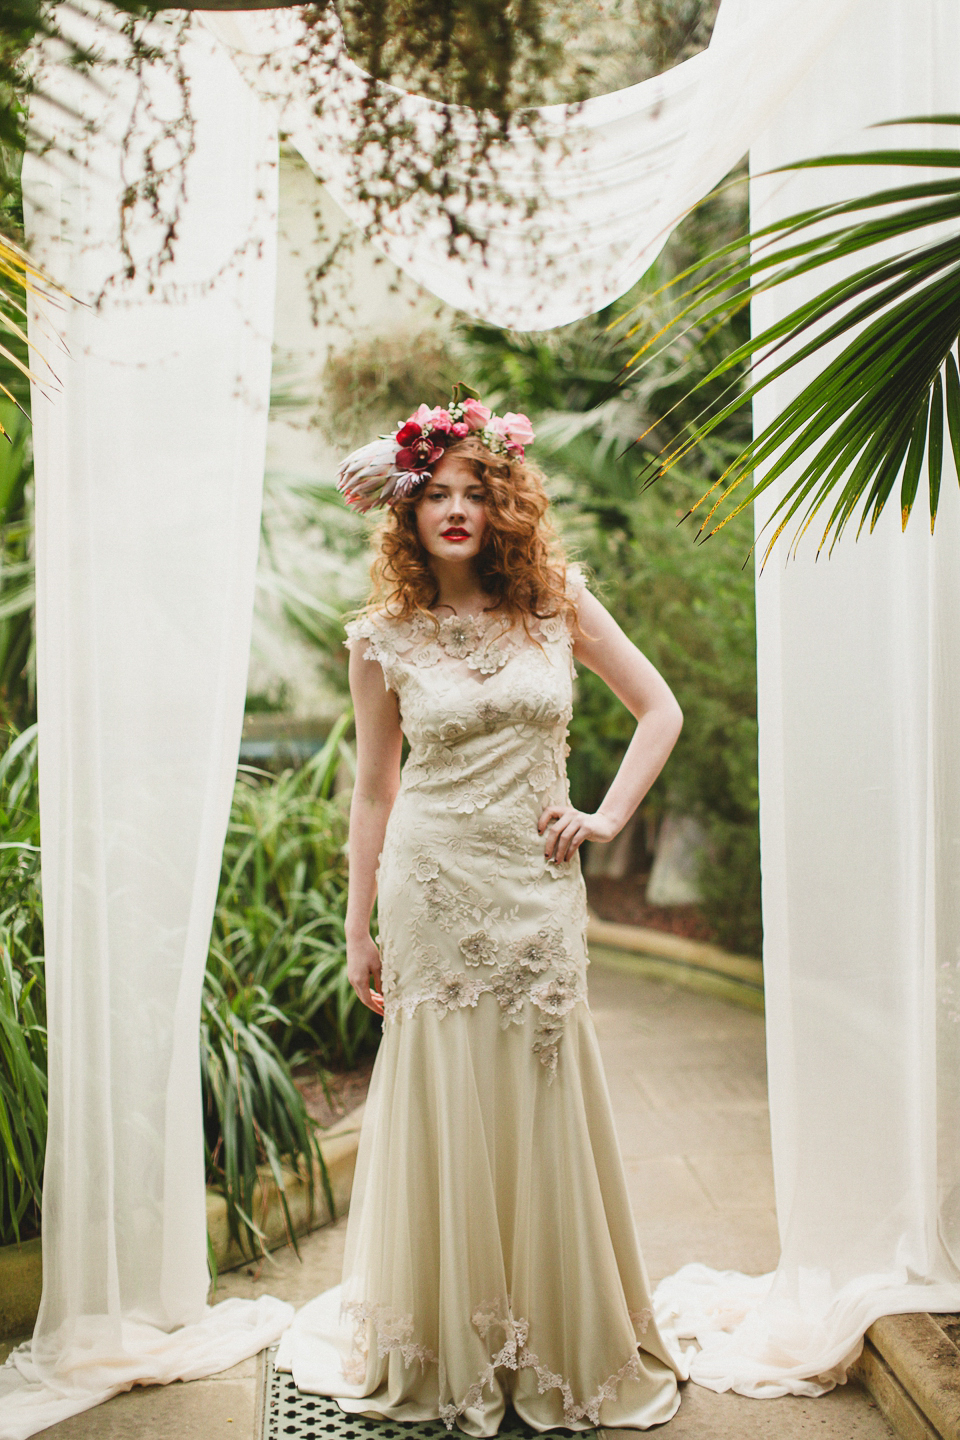 Wedding Whimsical Wedding Dress claire pettibones still life collection ethereal and whimsical wedding dresses bridal fashion